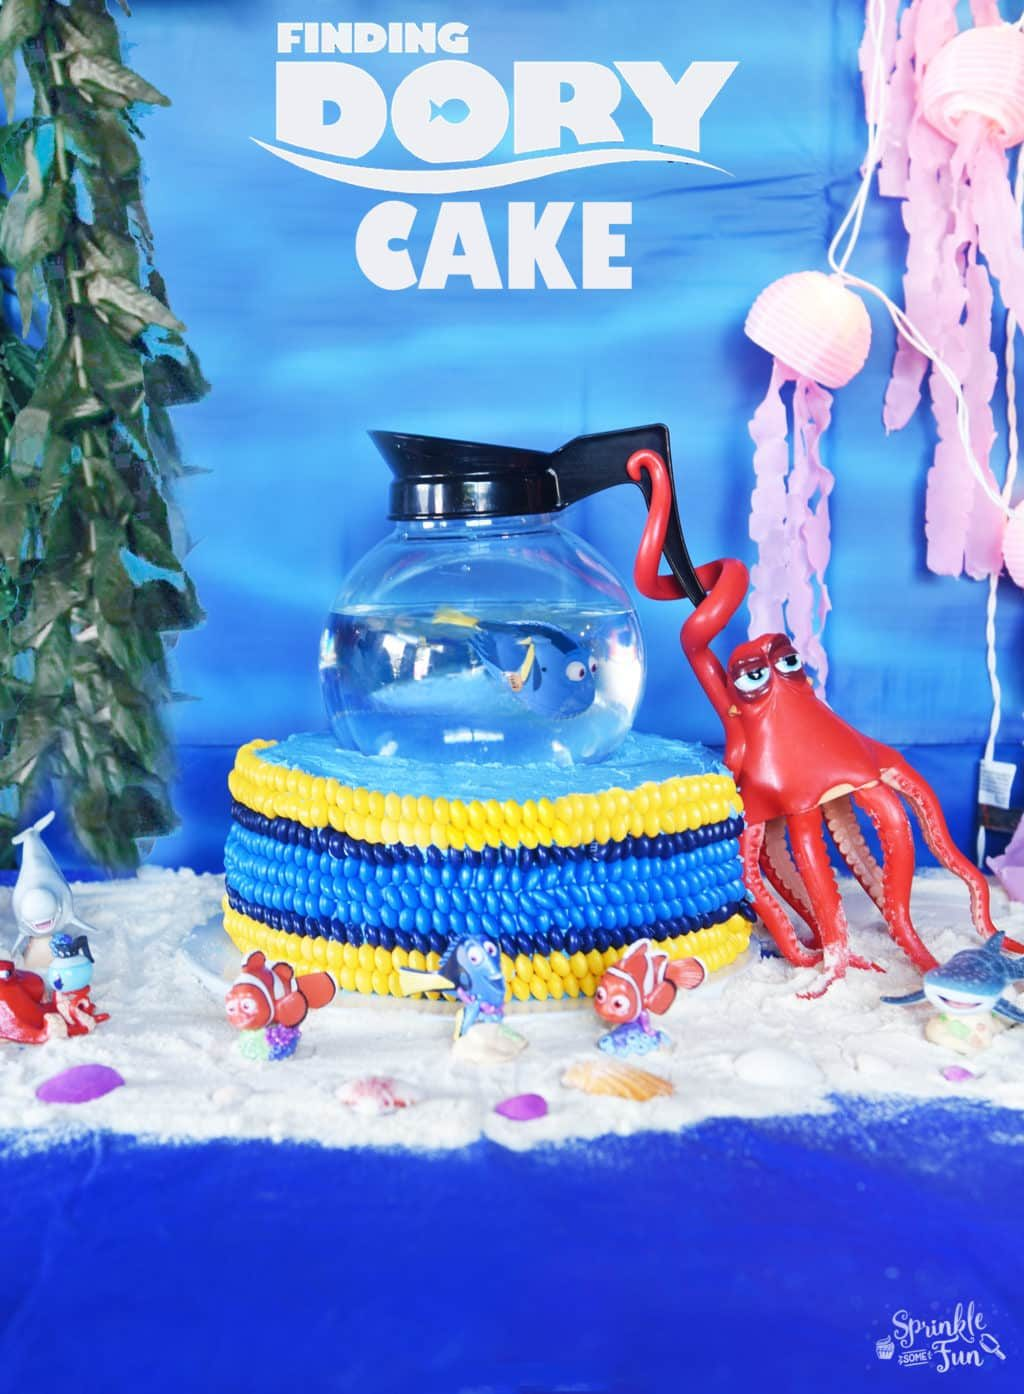 Finding Dory Cake Sprinkle Some Fun